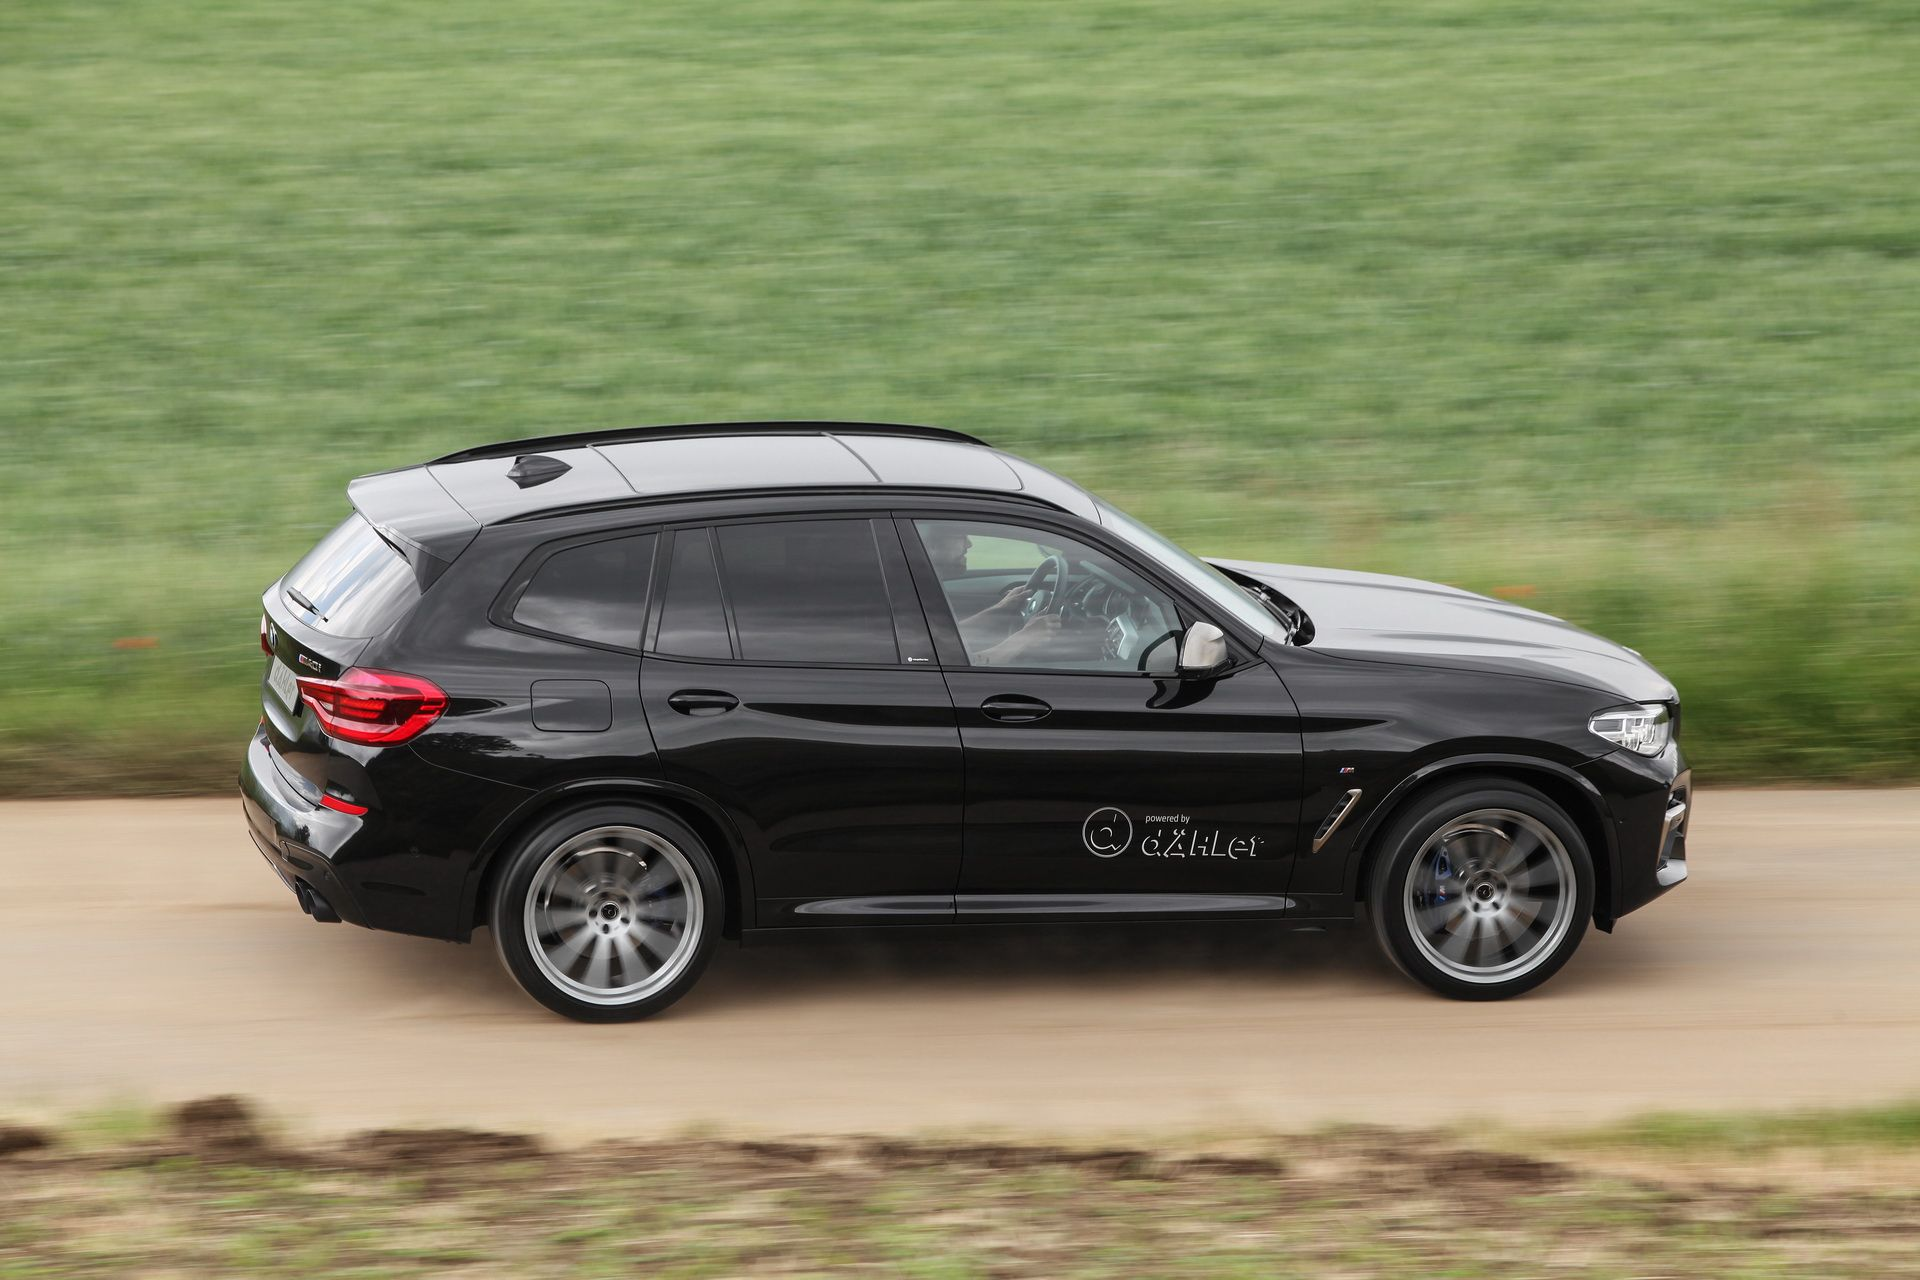 BMW_X3_M40i_by_Dahler_0019